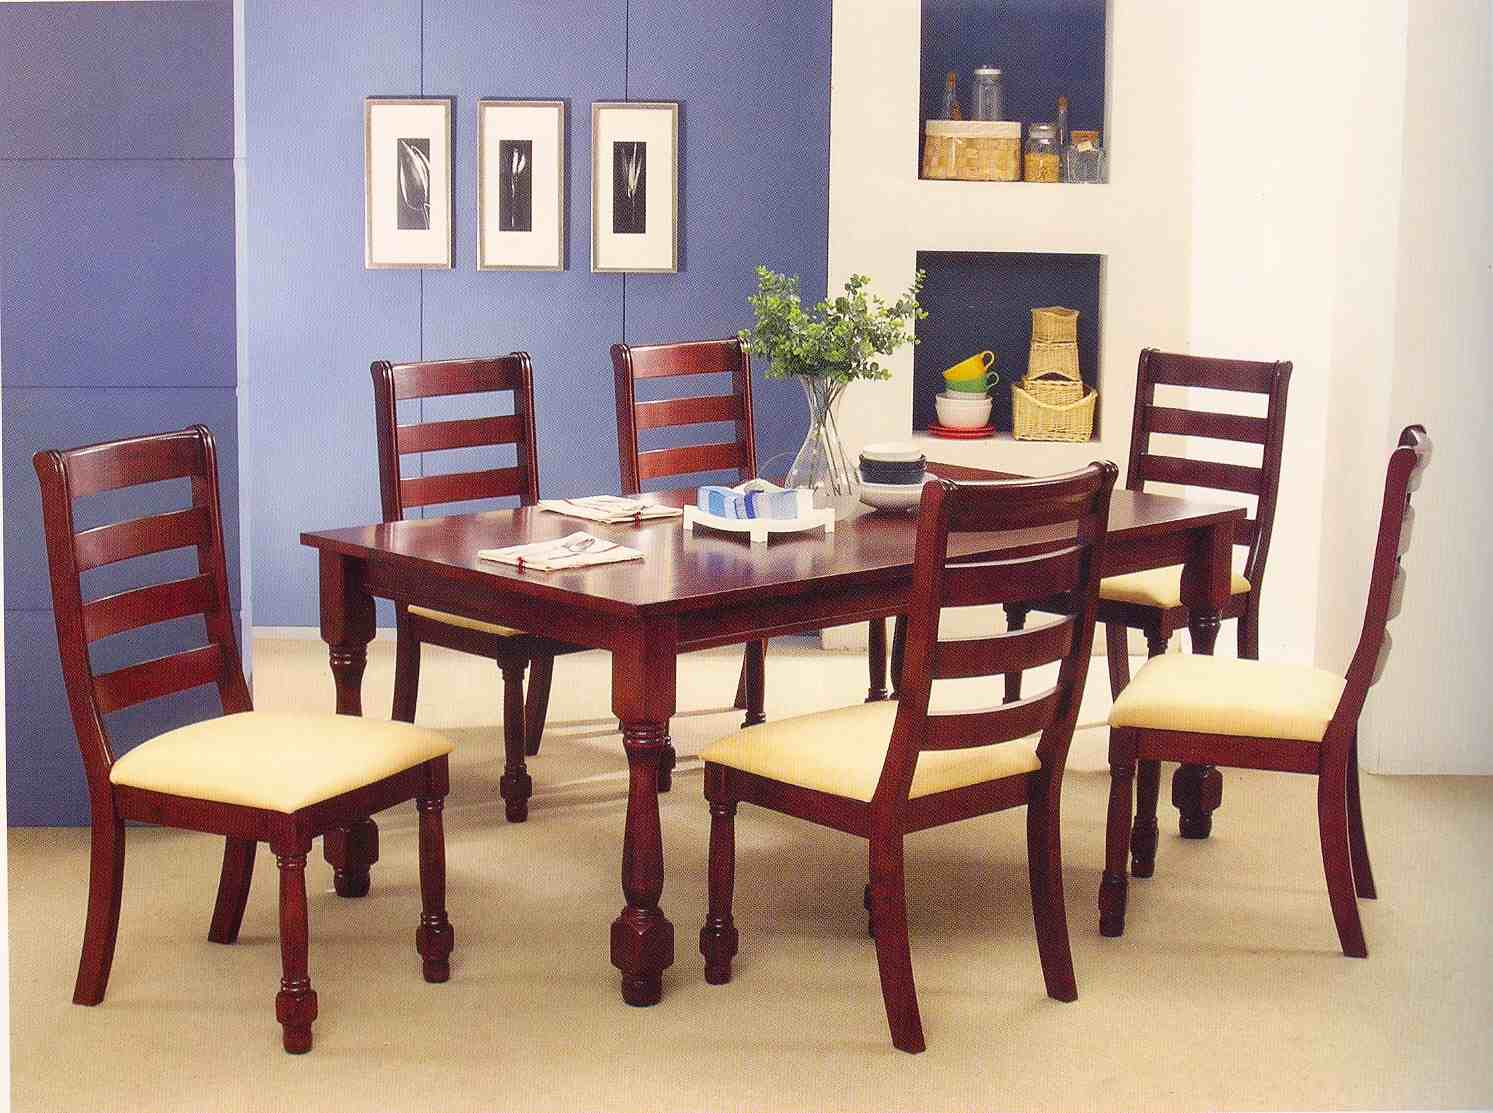 Dining room set for even more tastier meals home for Dining room furniture images